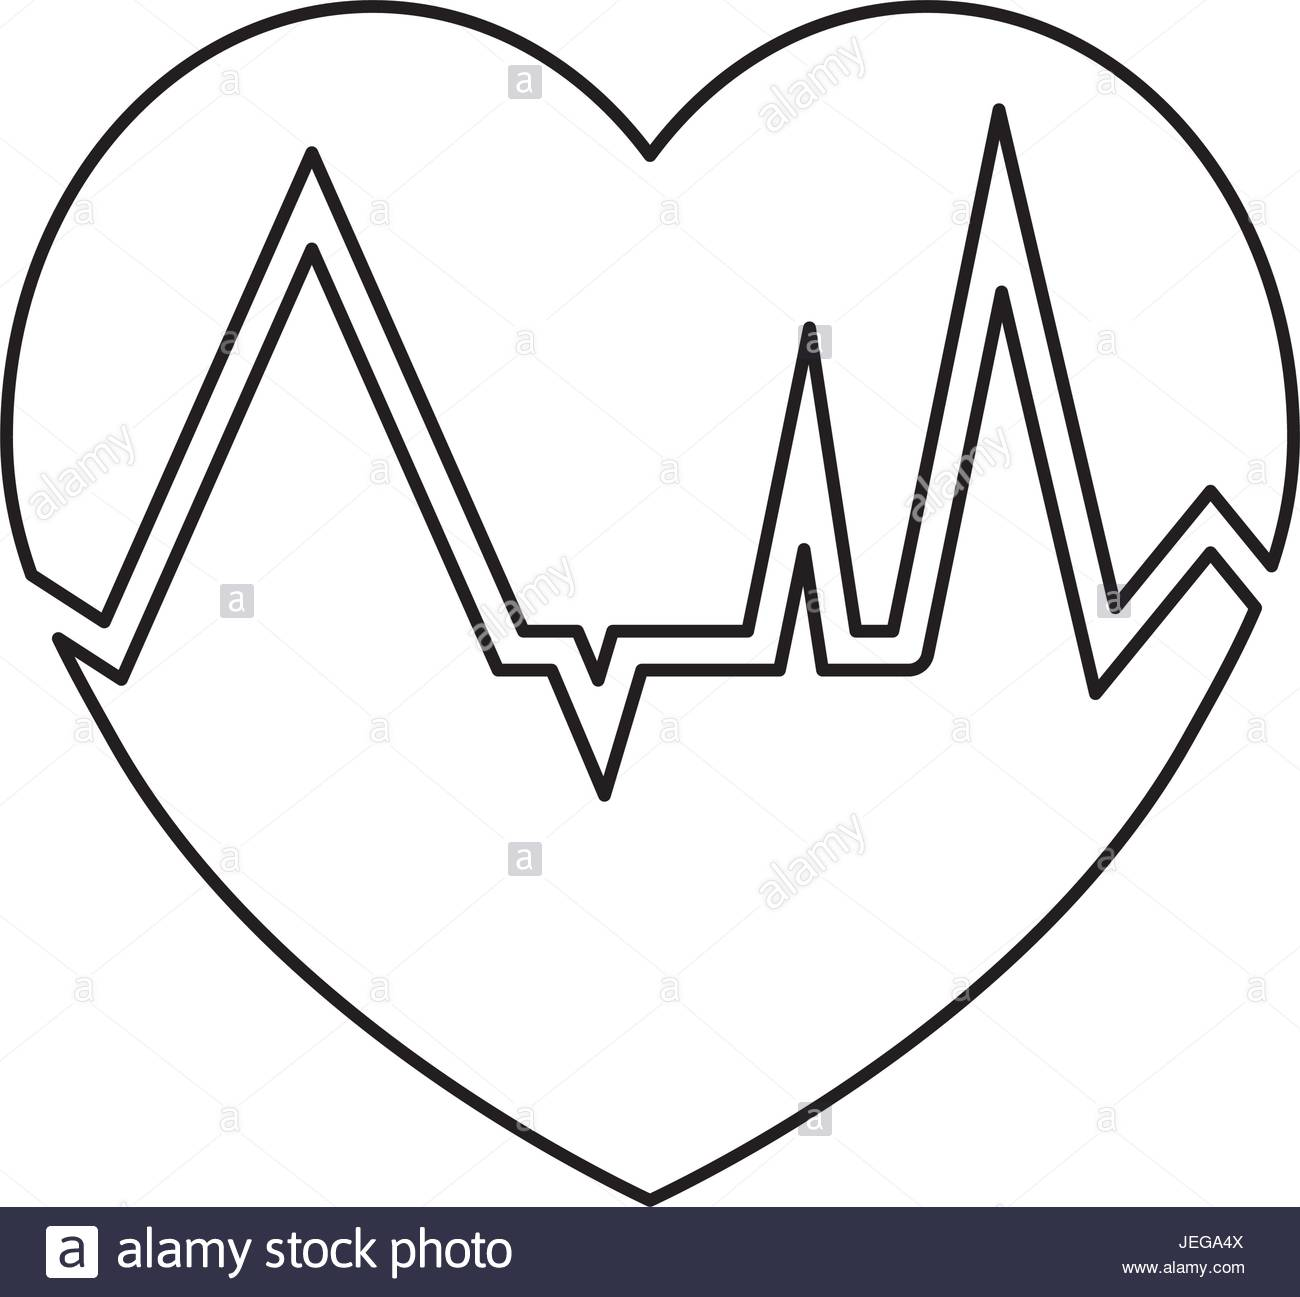 1300x1297 Heartbeat Count Red Stock Vector Art Amp Illustration, Vector Image